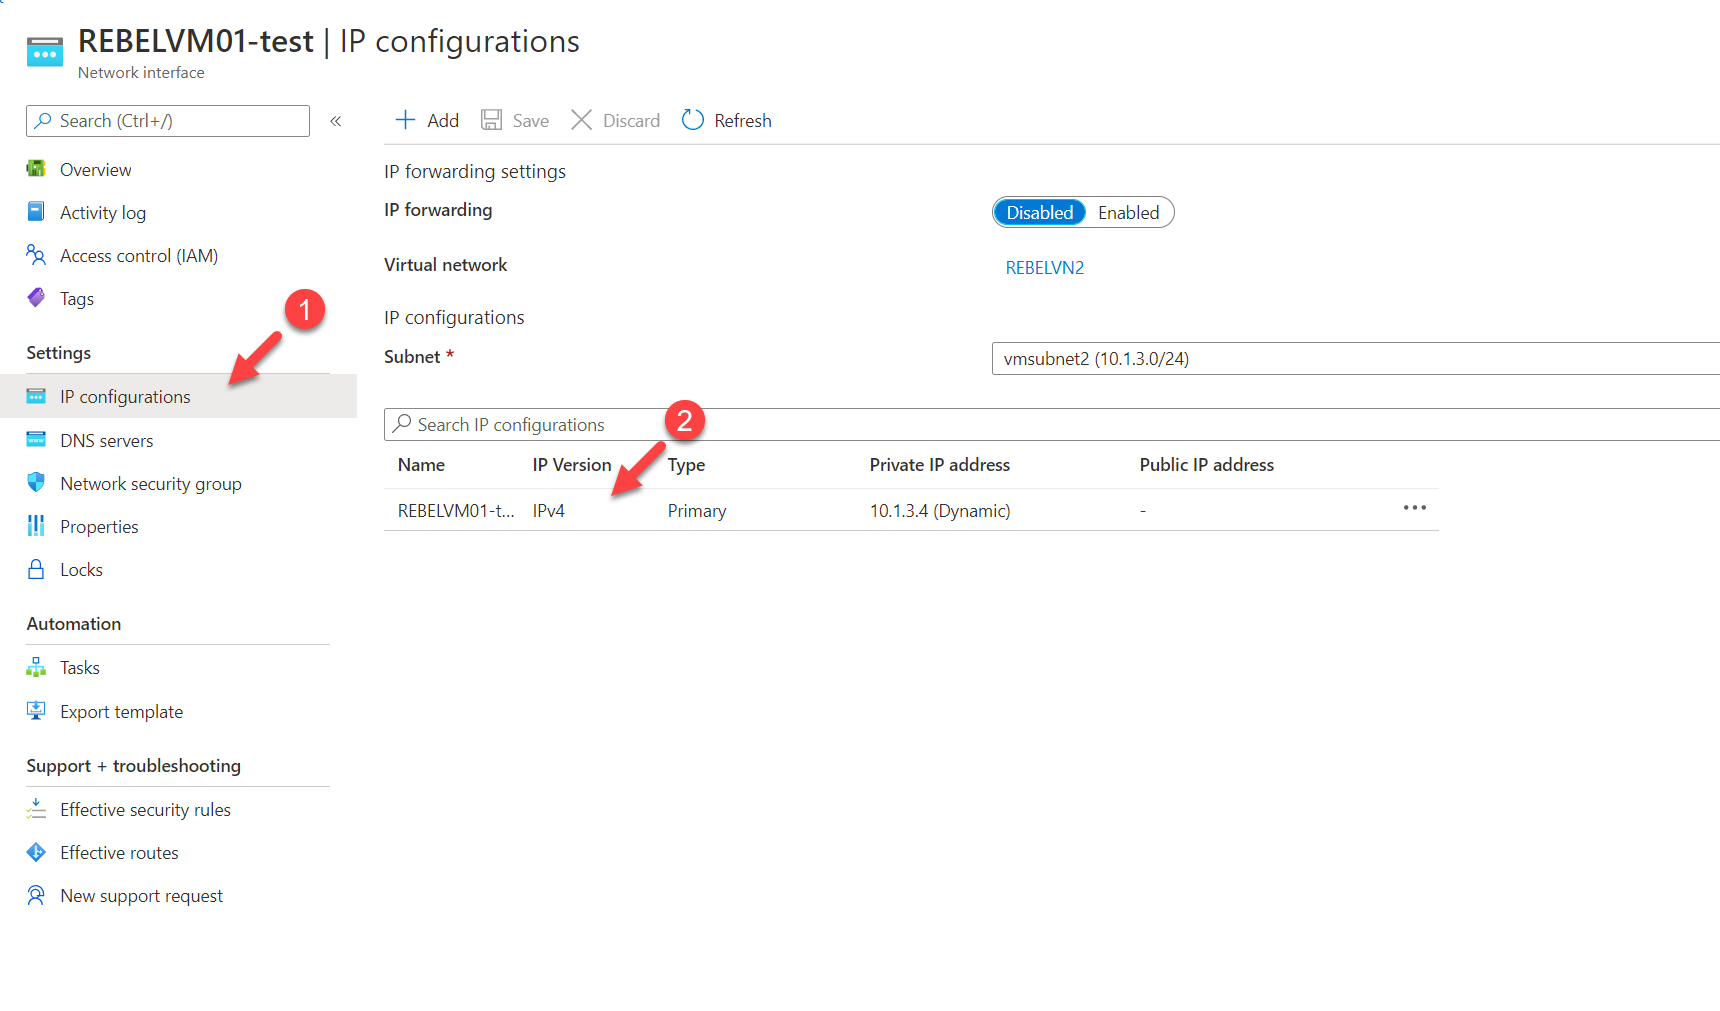 View existing Azure IP configuration